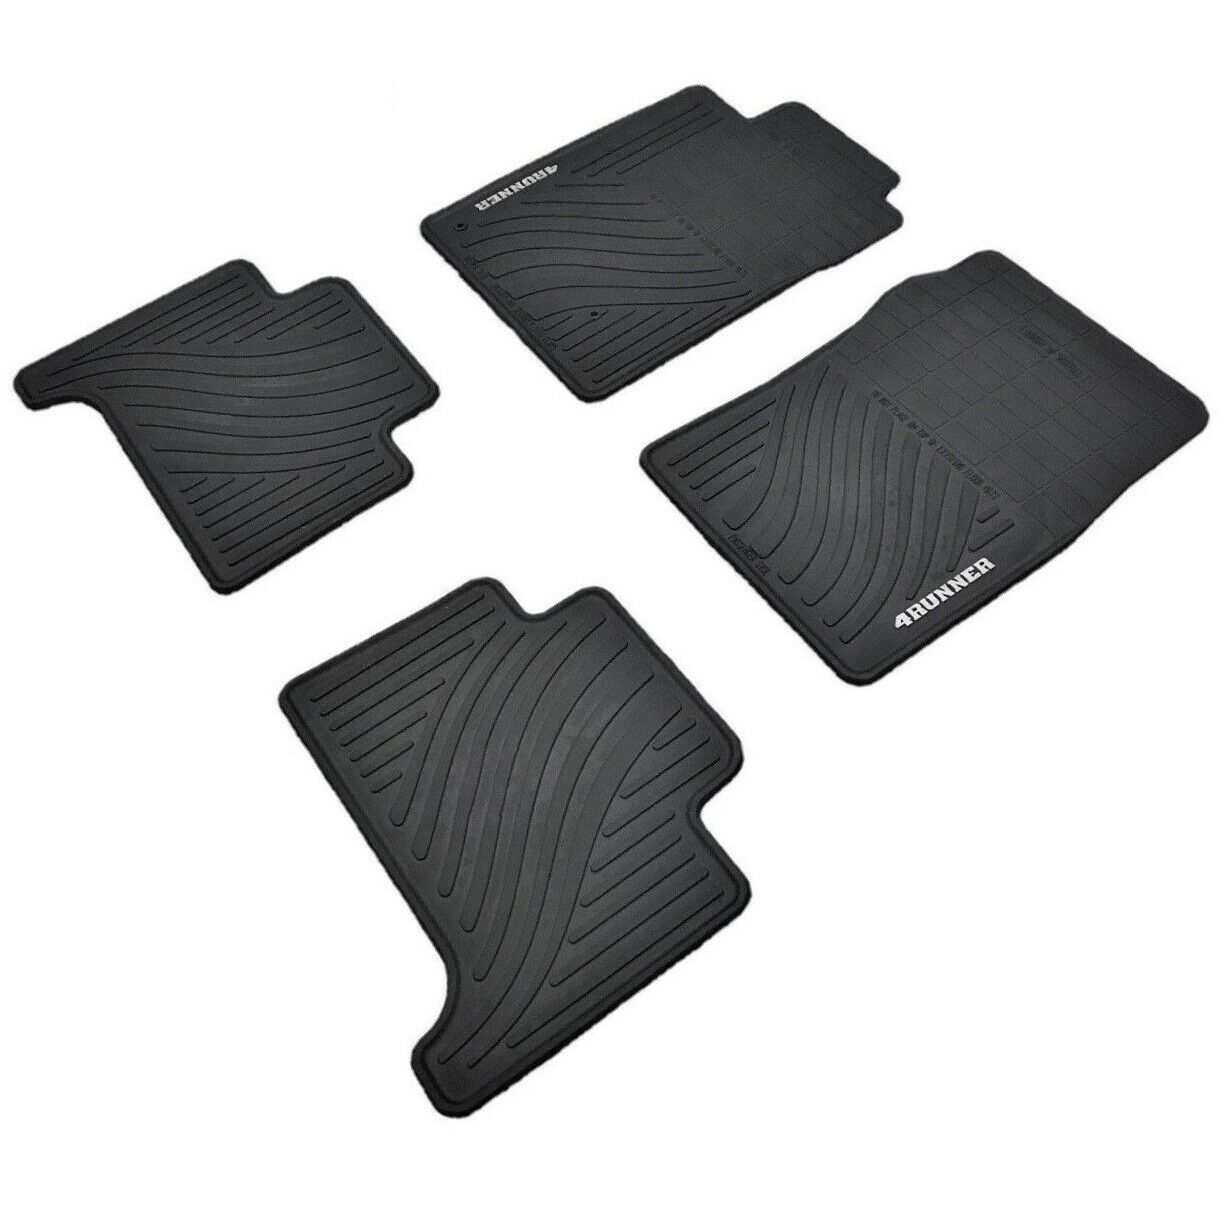 Set of 4 Genuine Toyota Accessories PT908-89090-20 Front and Rear All-Weather Floor Mat Black